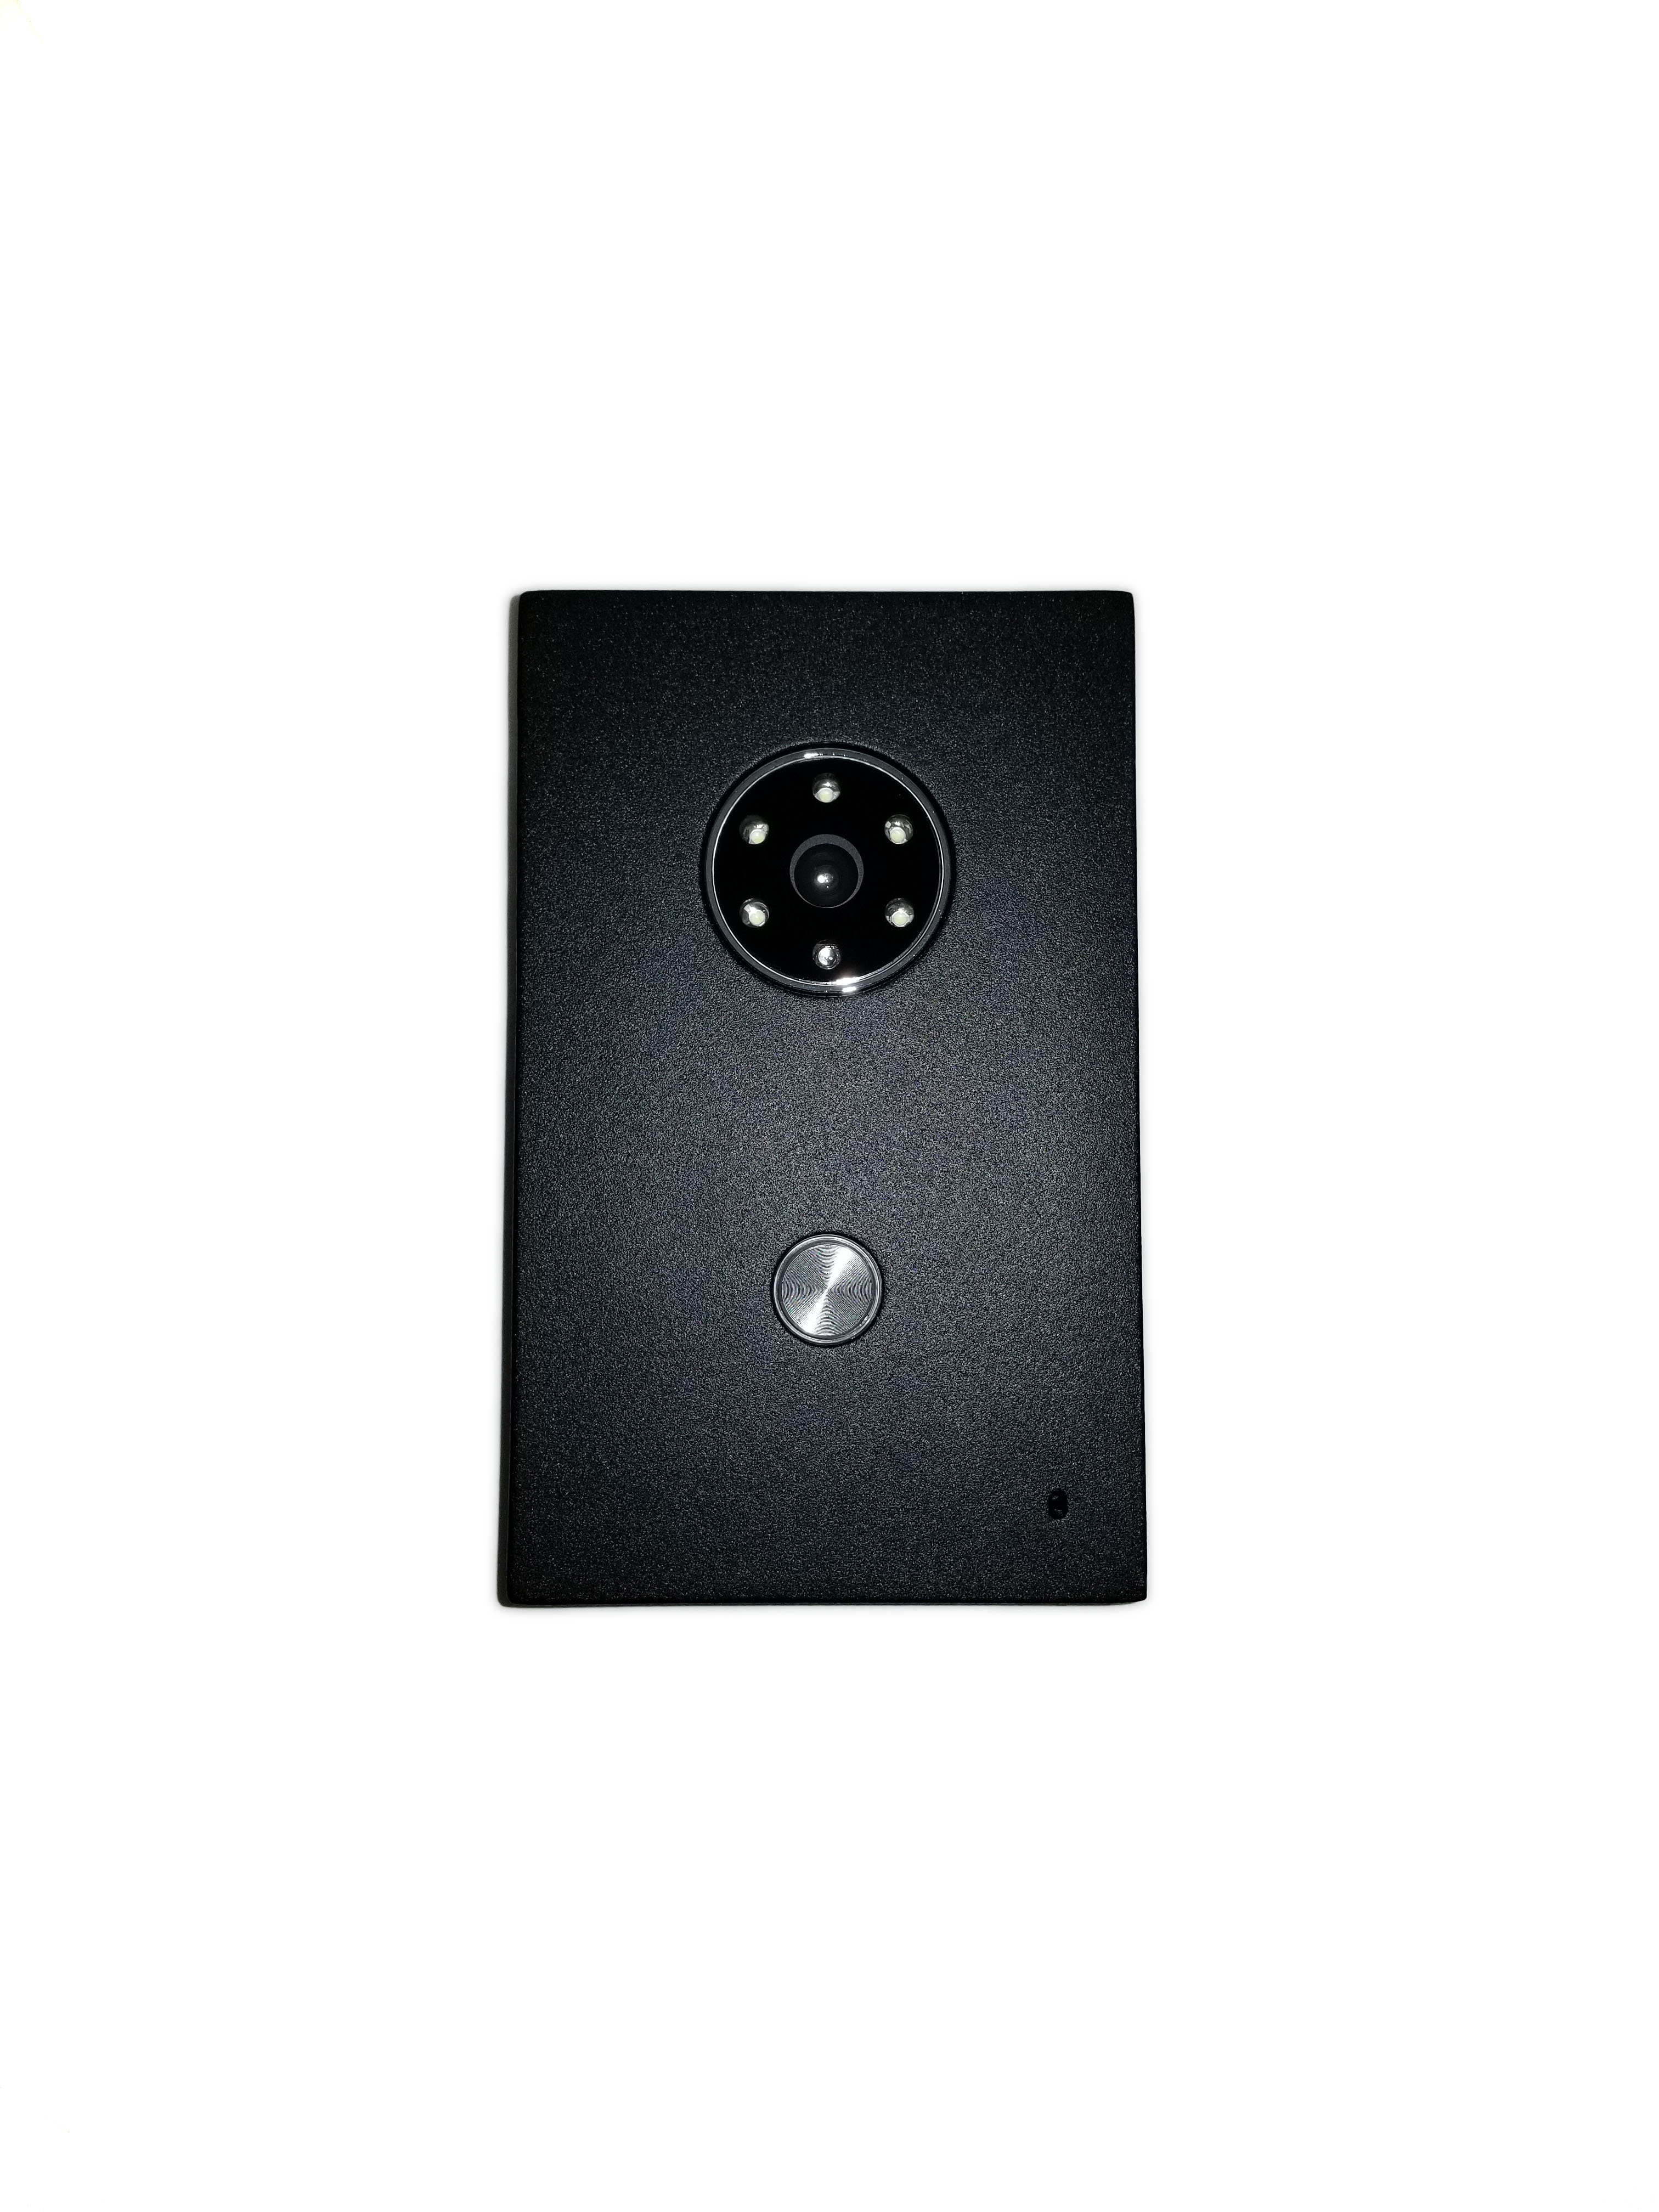 DP-8252 CHANNELVISION DP Series SIP Intercom, built in door strike relay 12/24V AC/DC, POE, flush mount box included, Oil Rubbed Bronze ************************* SPECIAL ORDER ITEM NO RETURNS OR SUBJECT TO RESTOCK FEE *************************